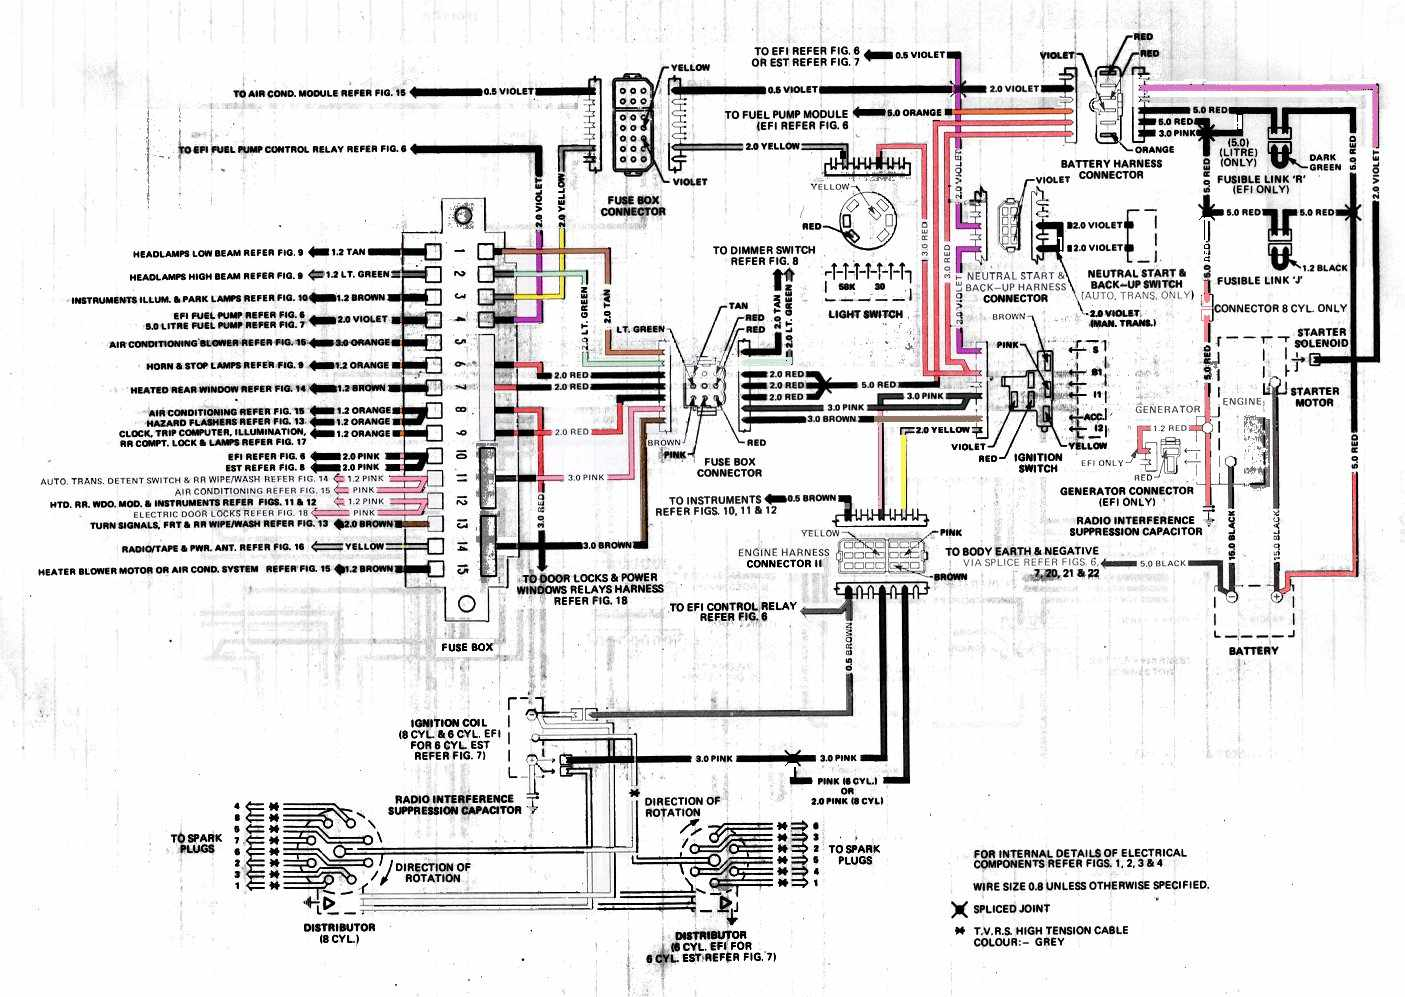 Holden+VK+Commodore+Generator+Electrical+Wiring+Diagram 100 [ wiring diagram maker ] software block diagram u2013 electrical wire diagram software freeware at alyssarenee.co